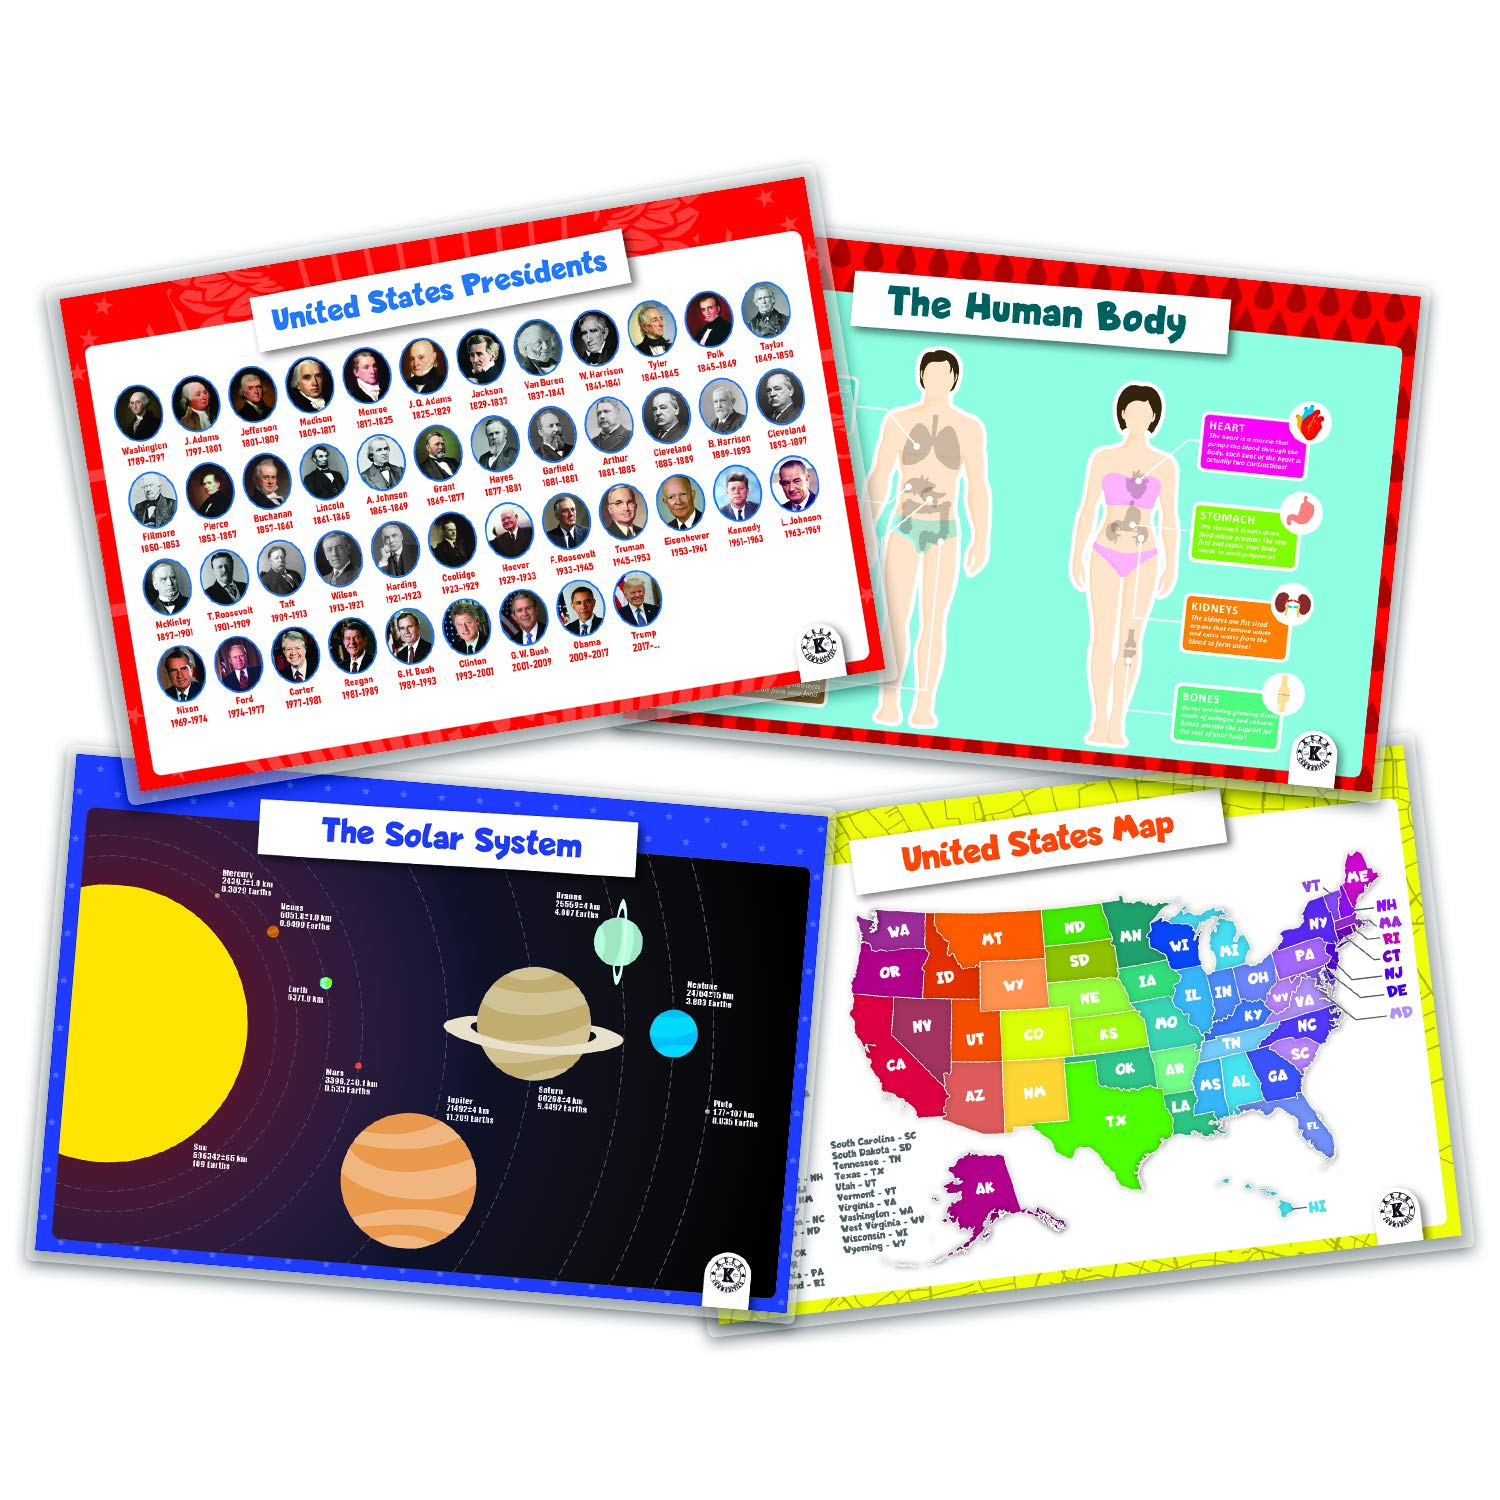 Placemats for Kids Children Educational, Learning and Teaching Fun - 4 Pack Bundle Set Includes - The Human Body, The Solar Sysytem, United States Map and United States Presidents - KCPM006 by KCD